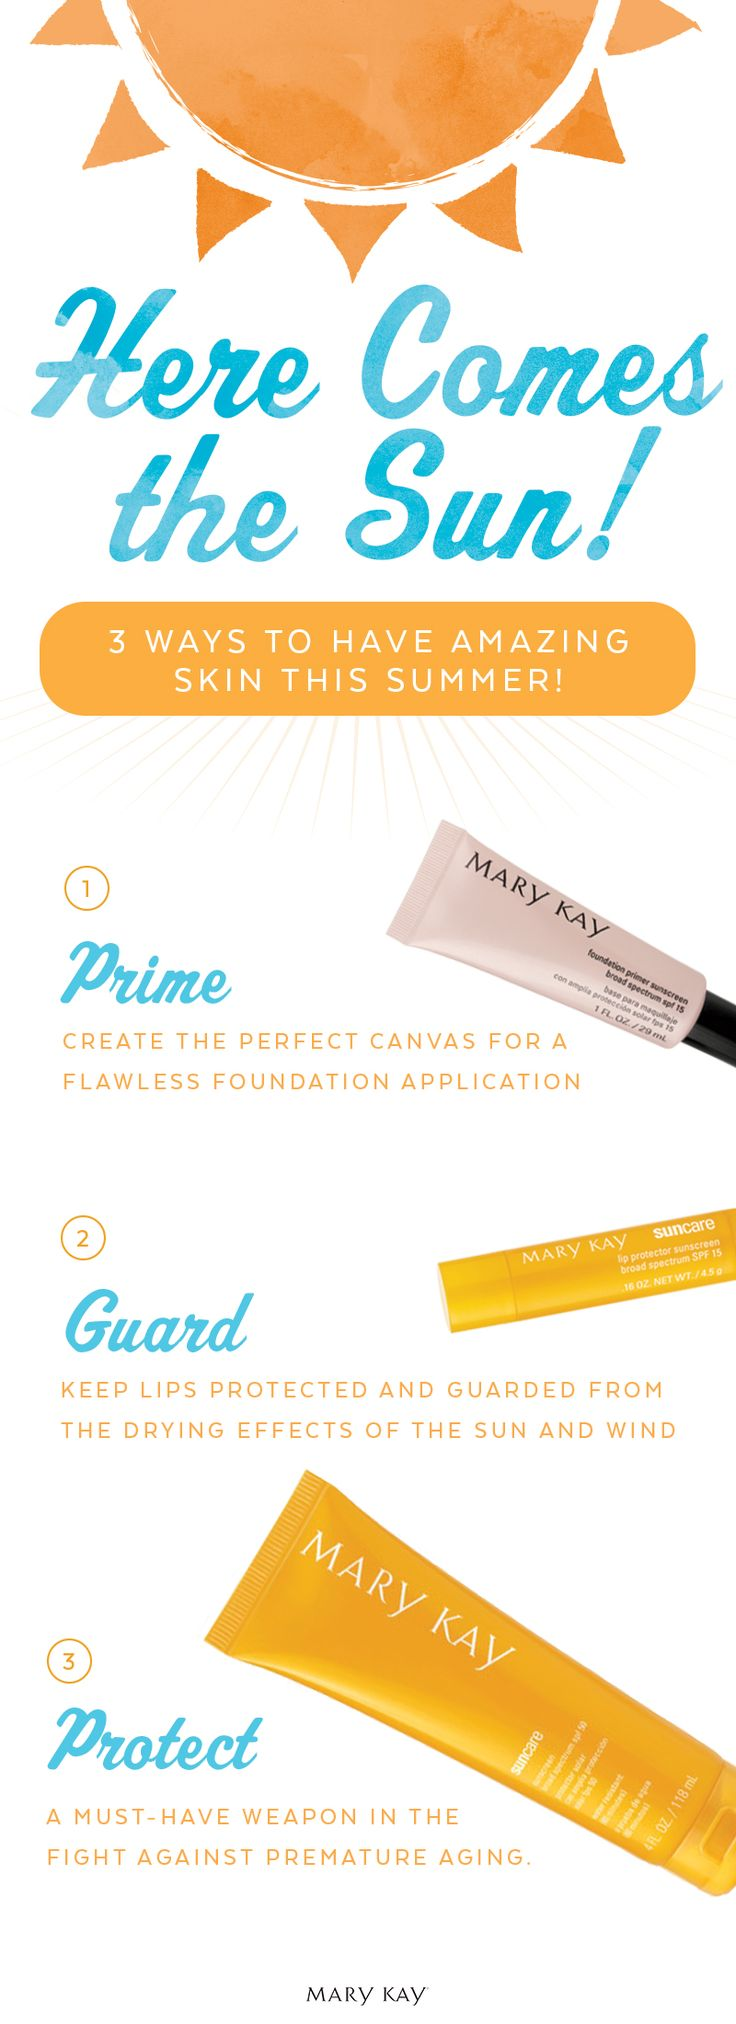 Tips to sensational summer skin - Gorgeous Summer Skin In 3 Simple Steps Create The Perfect Canvas For A Flawless Foundation